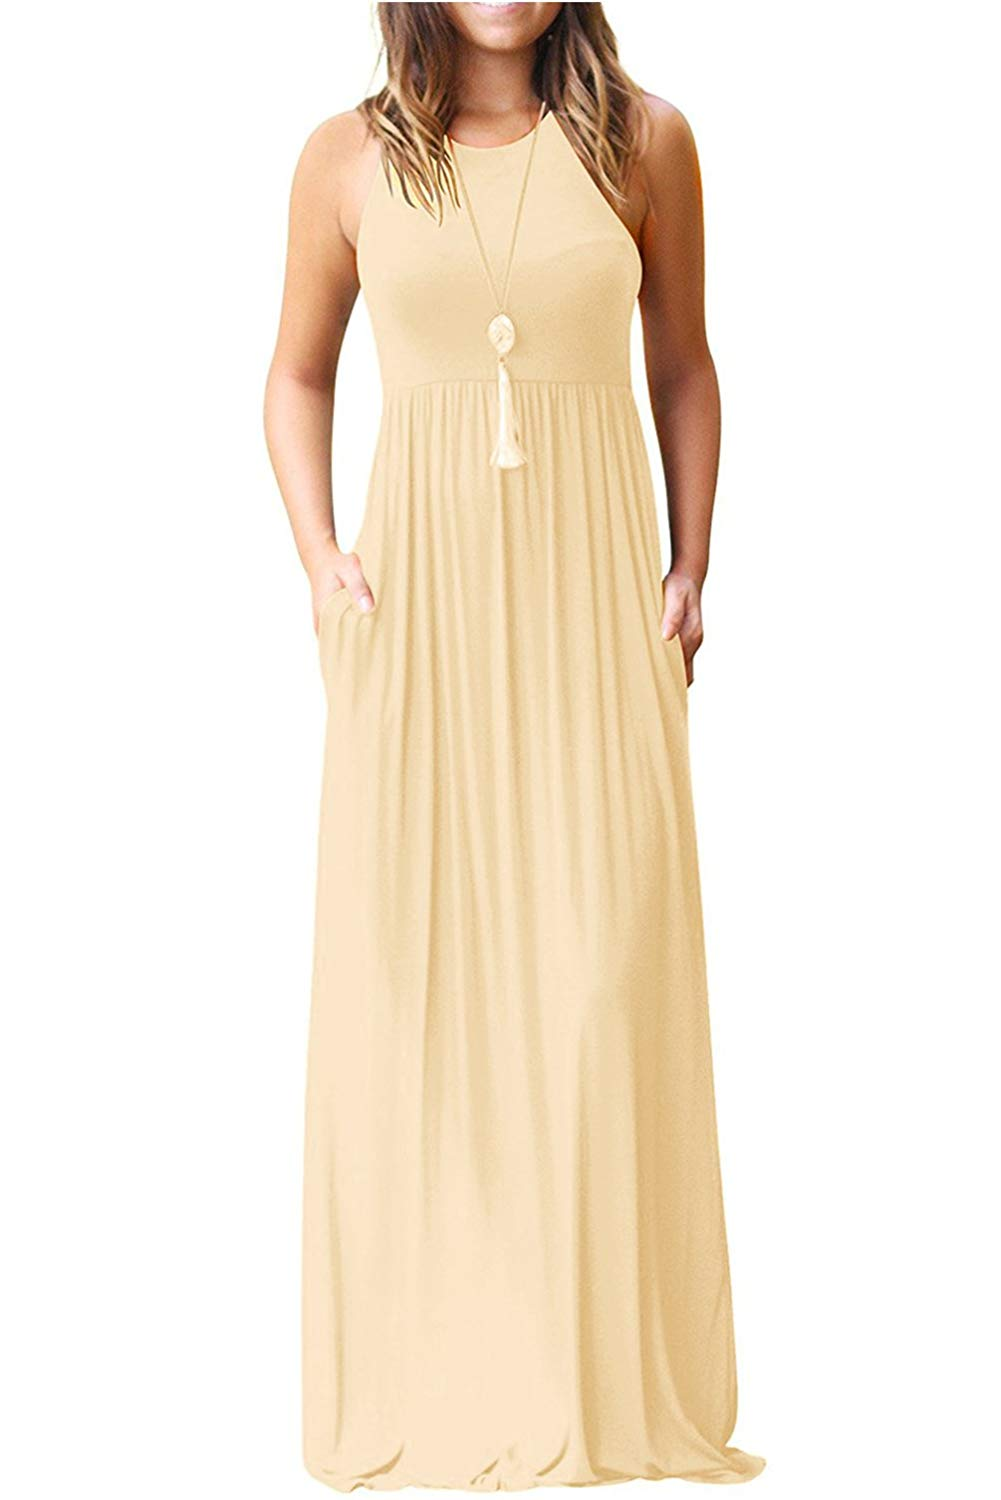 Hervive Women's Short Sleeves Racerback Loose Plain Long Maxi Dresses with Pockets